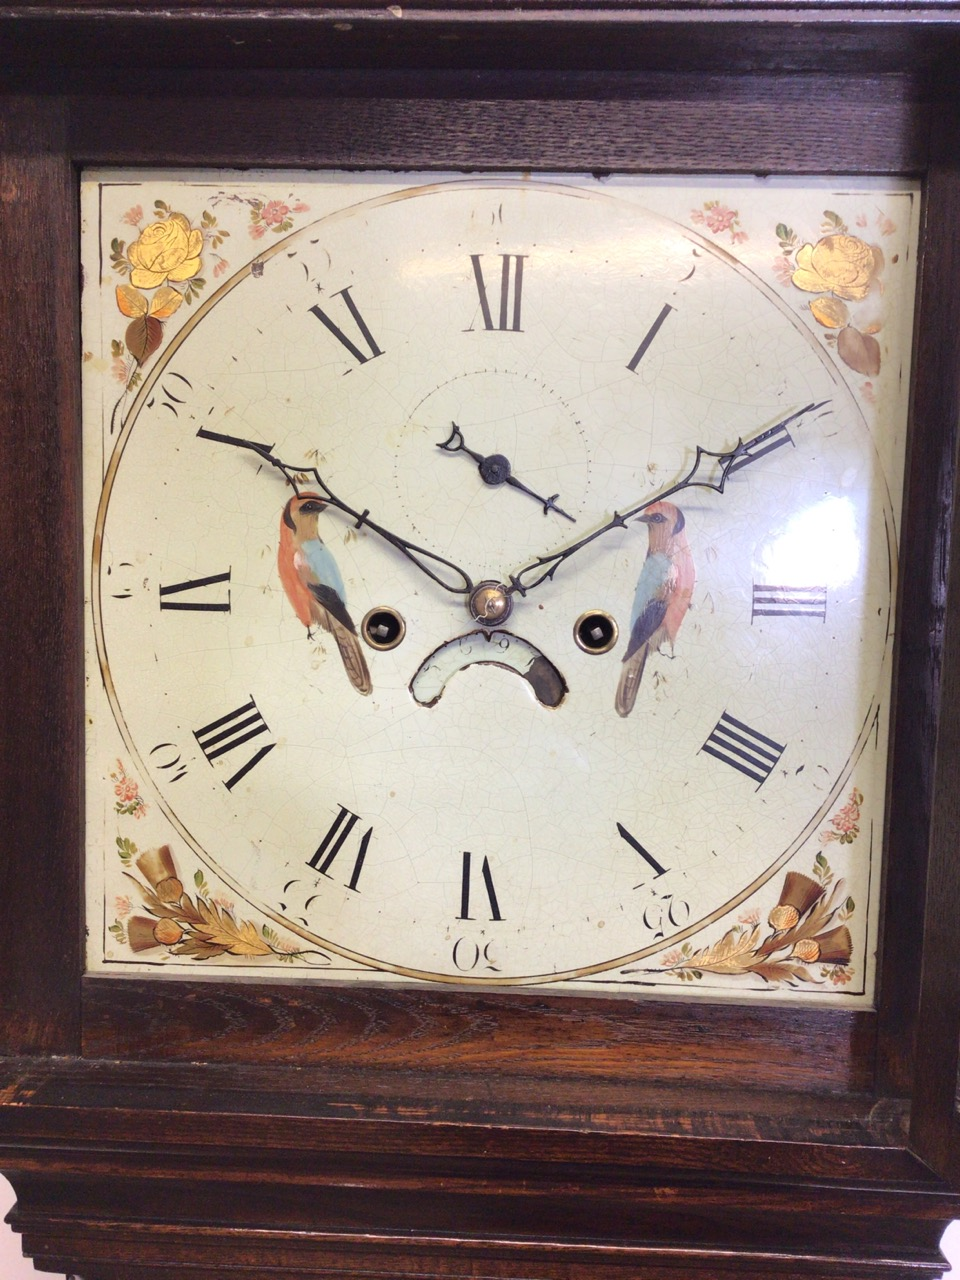 An 8 day mahogany longcase clock with weights and pendulum and key with painted face depicting birds - Image 2 of 10